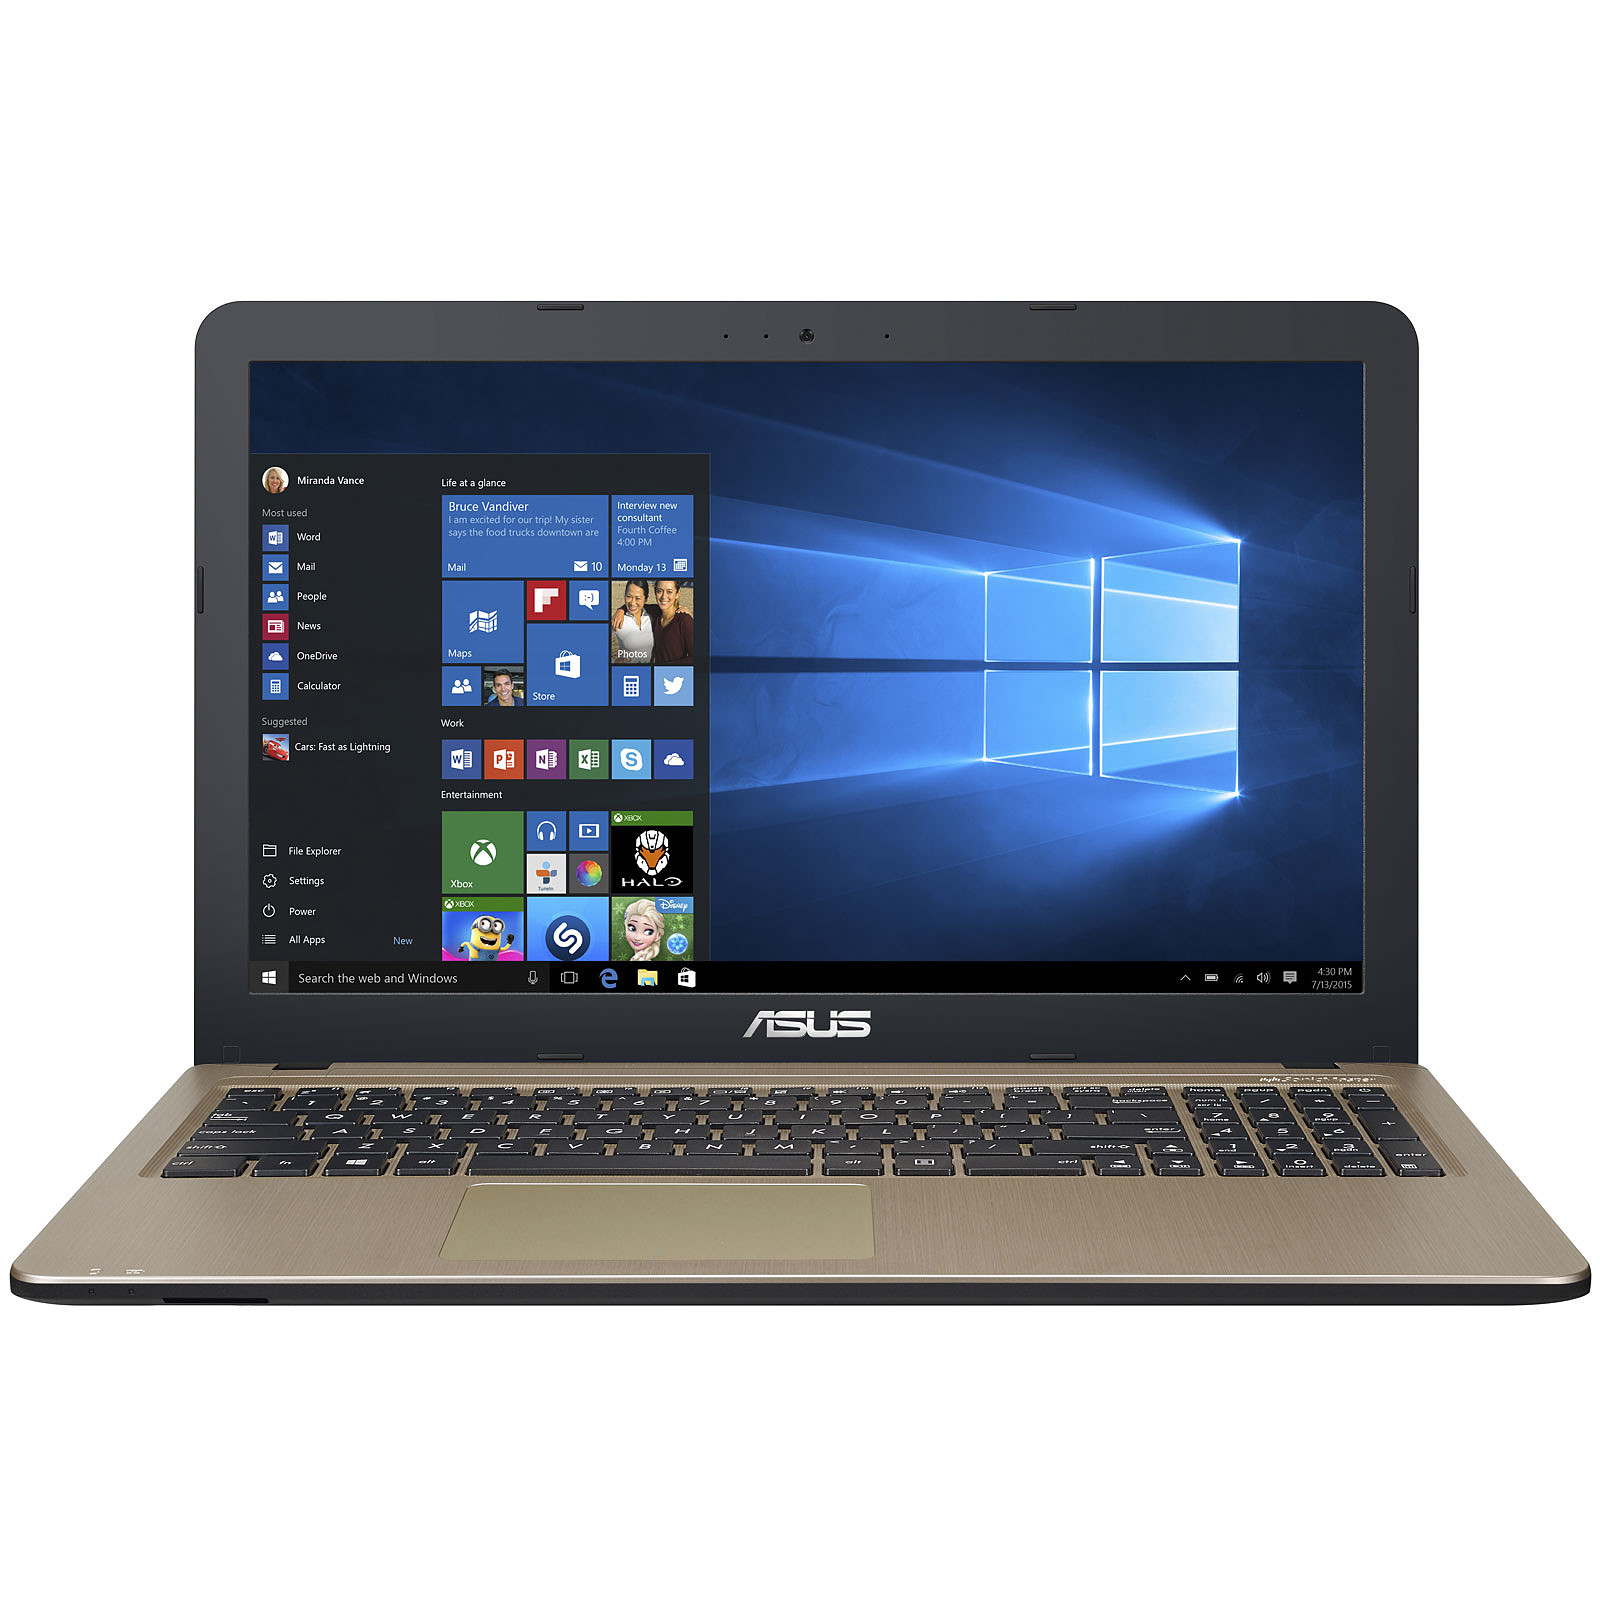 asus a540la xx373t occasion pc portable asus sur ldlc. Black Bedroom Furniture Sets. Home Design Ideas